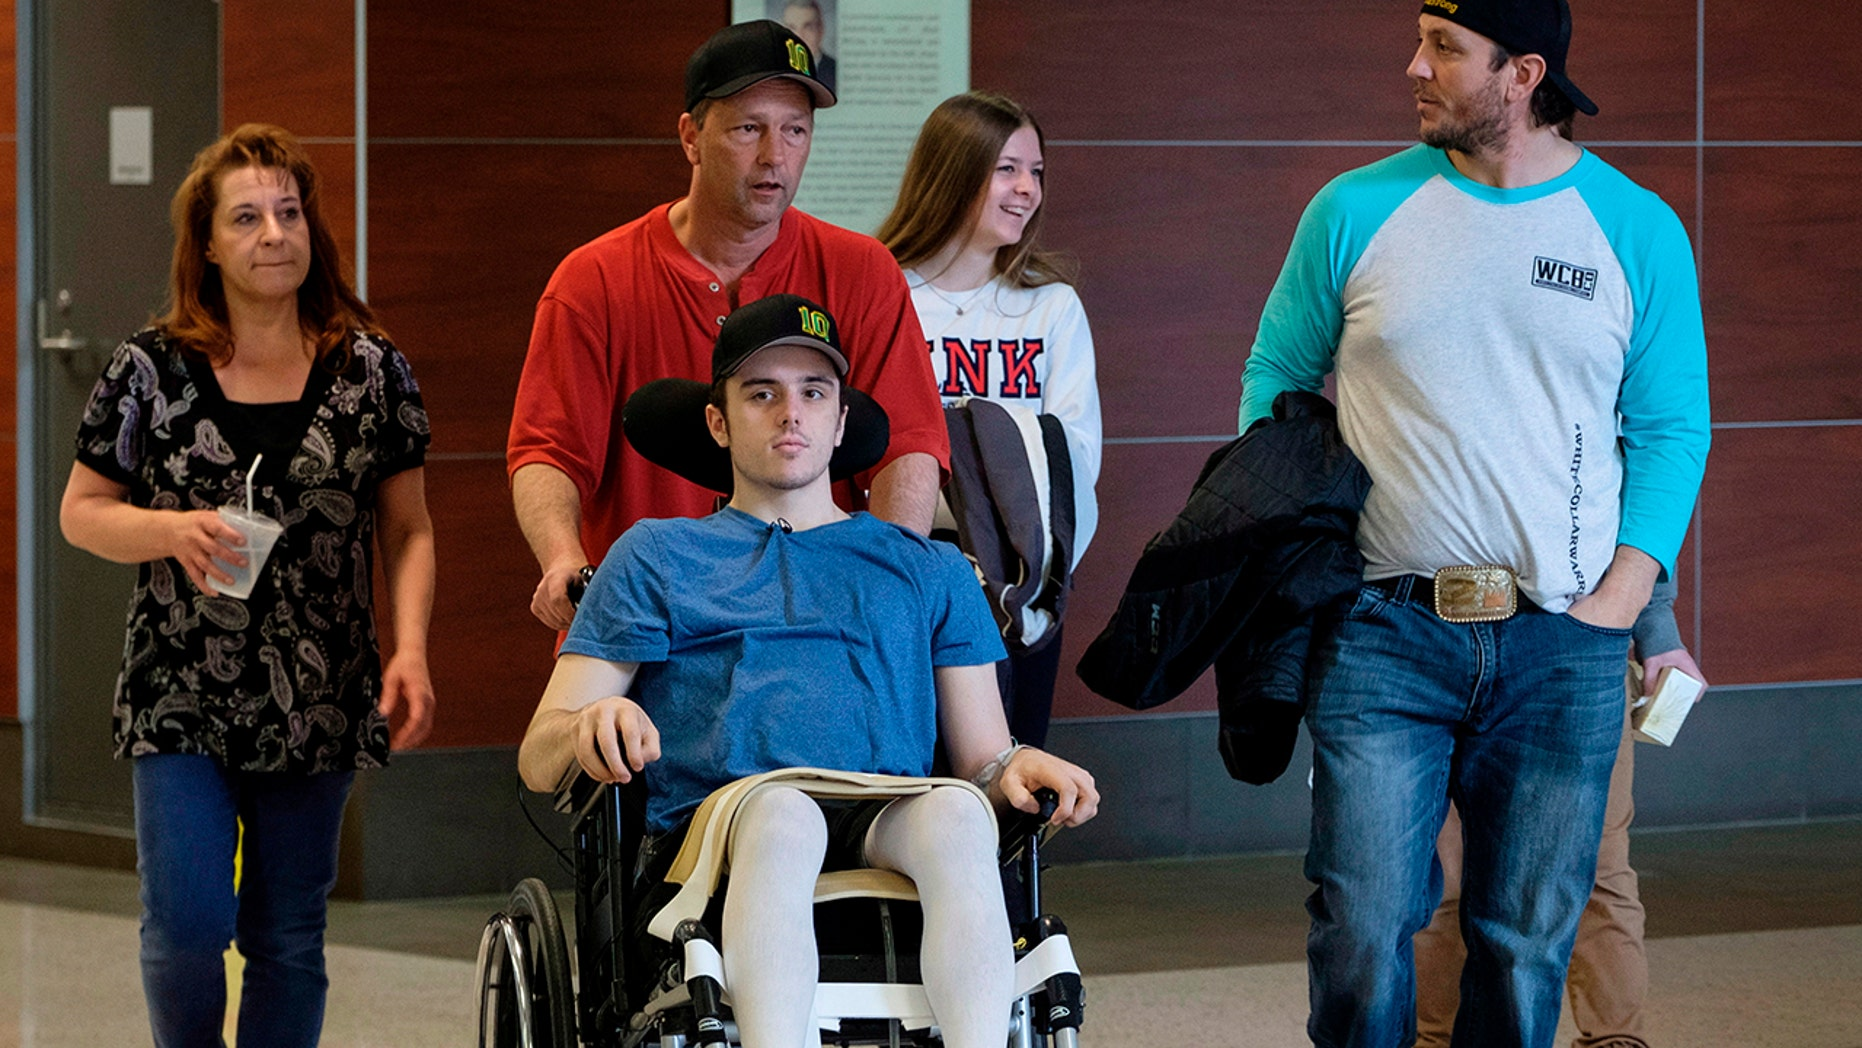 Ryan Straschnitzki was paralyzed following a bus crash that killed 16 people. He is scheduled to fly to Philadelphia on Wednesday to continue treatment.